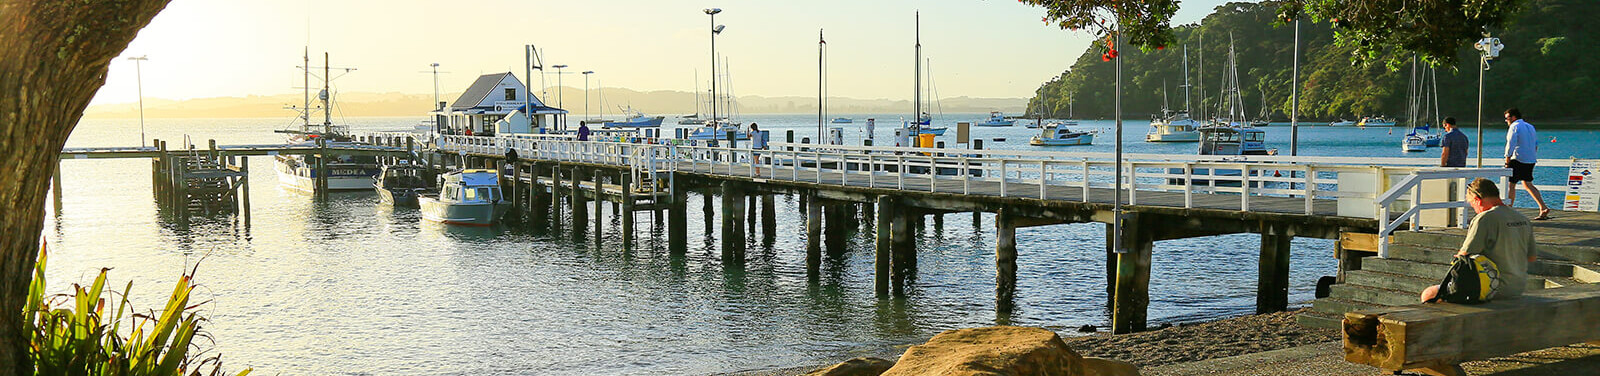 Russell's Waterfront and Wharf